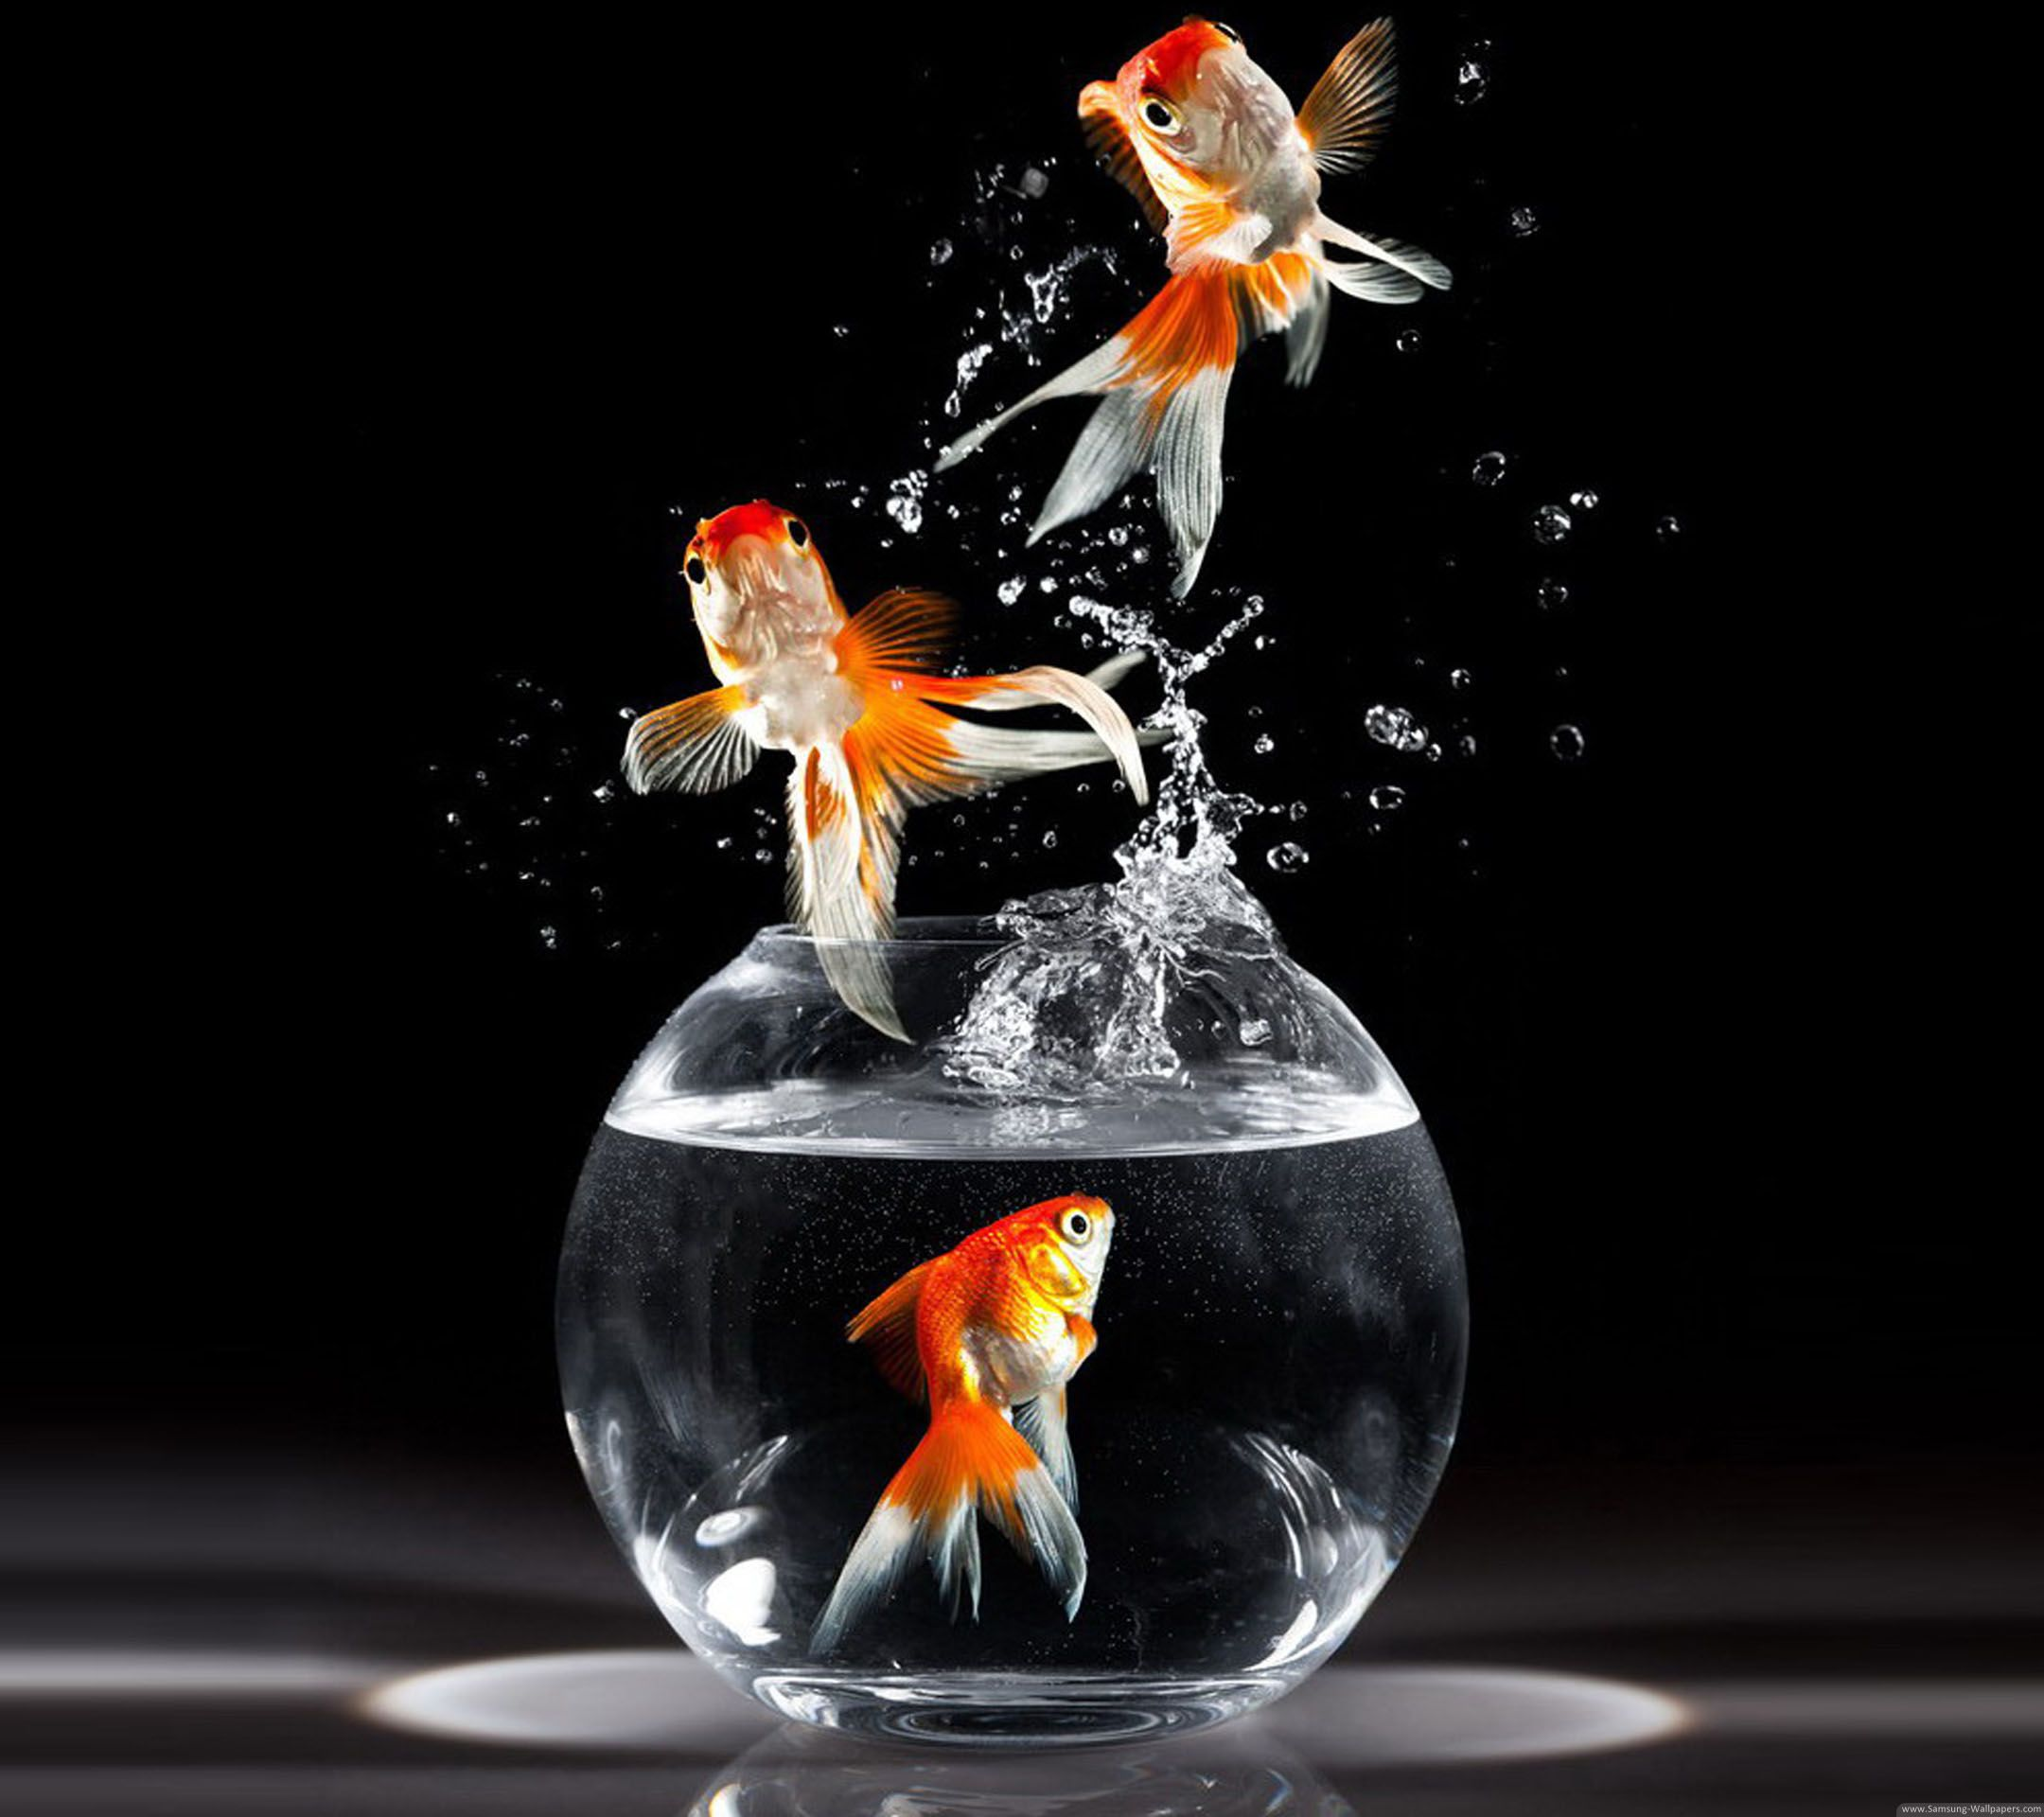 Cute Goldfish Wallpaper - Google Search